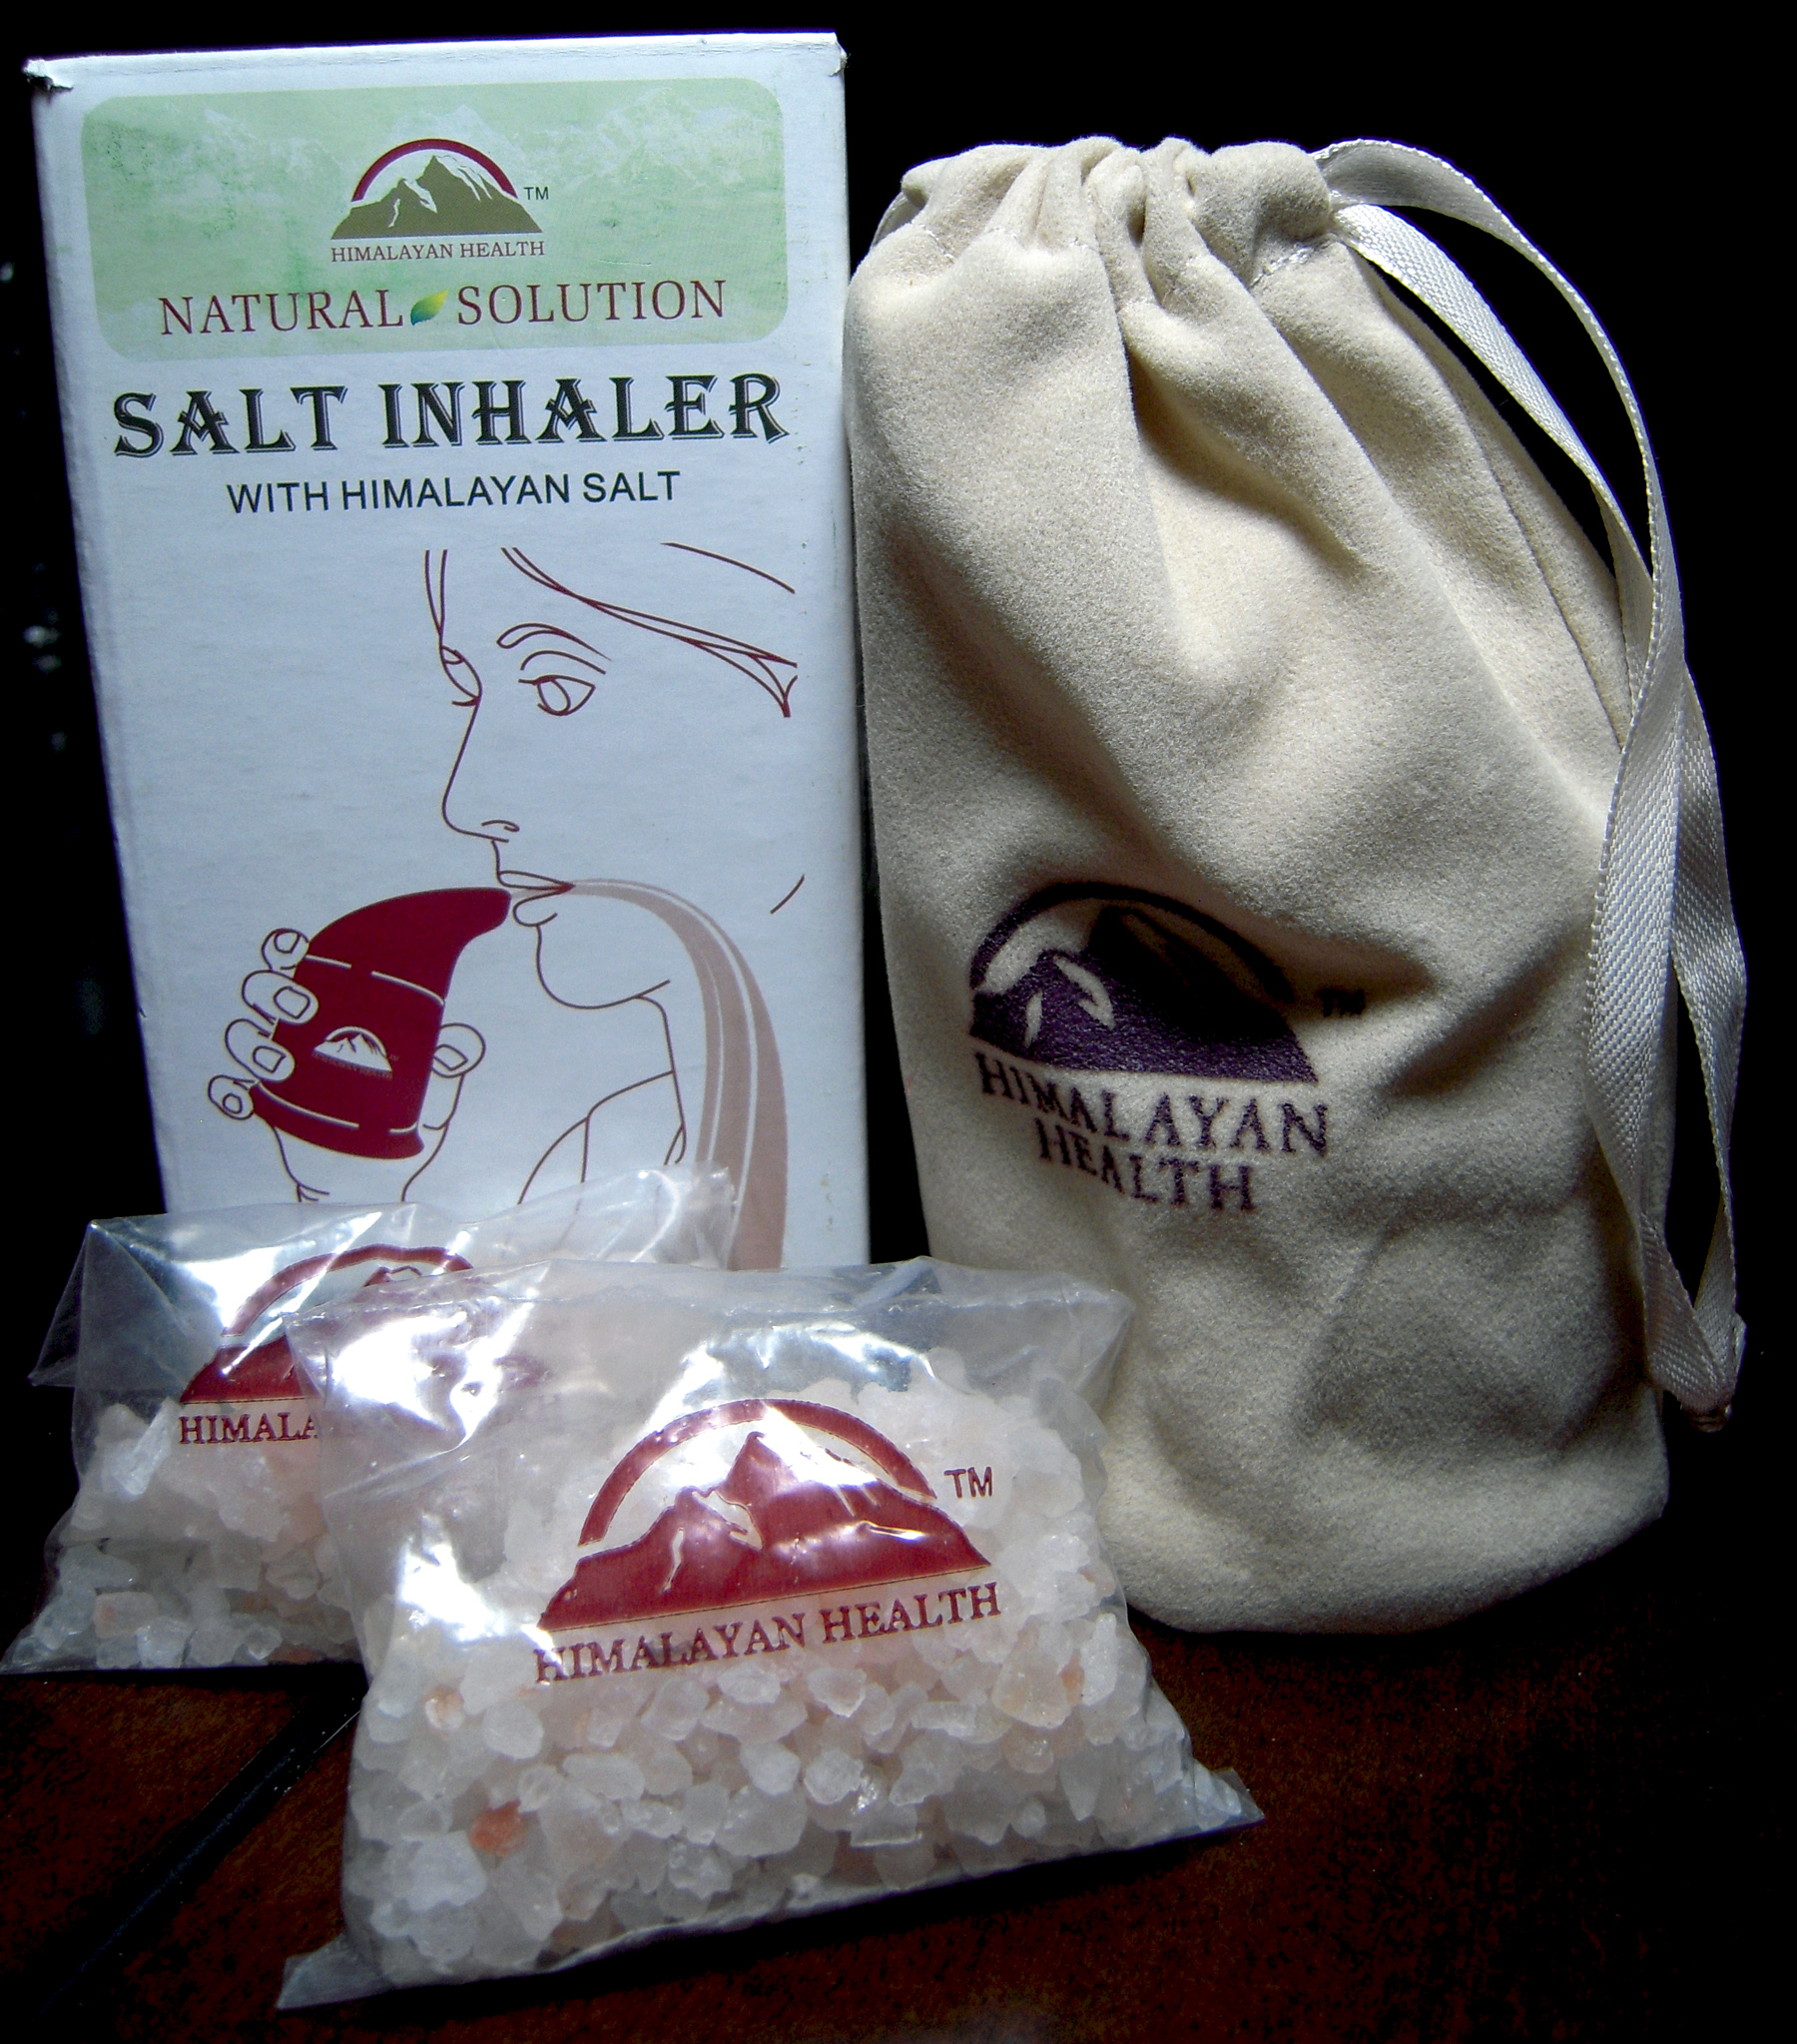 Himalayan Salt Inhaler, COPD, Asthma, Allergies, hay fever, snoring, smoke, air pollution